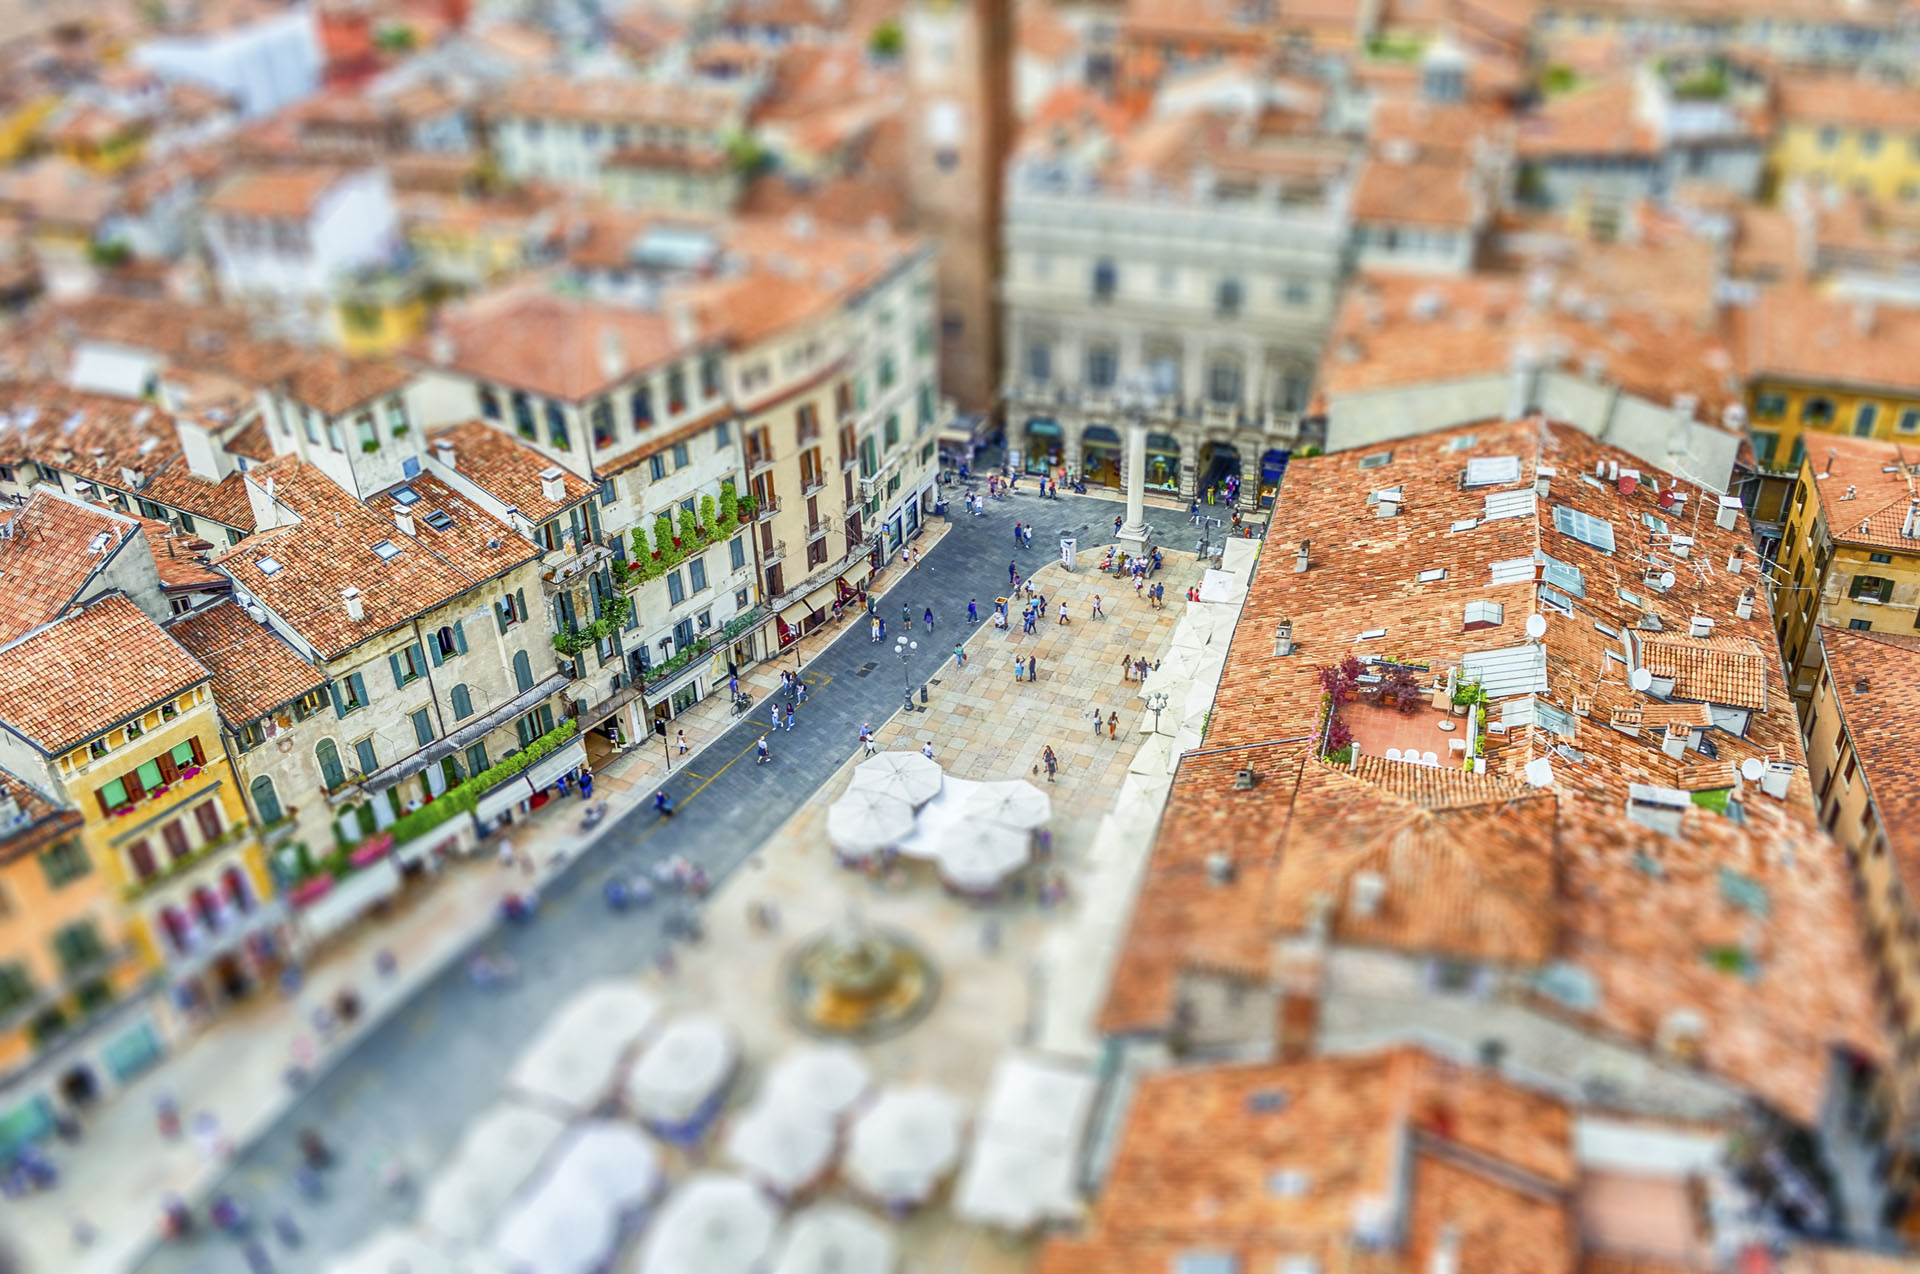 View over Piazza delle Erbe, Verona, Italy. Tilt-shift effect applied